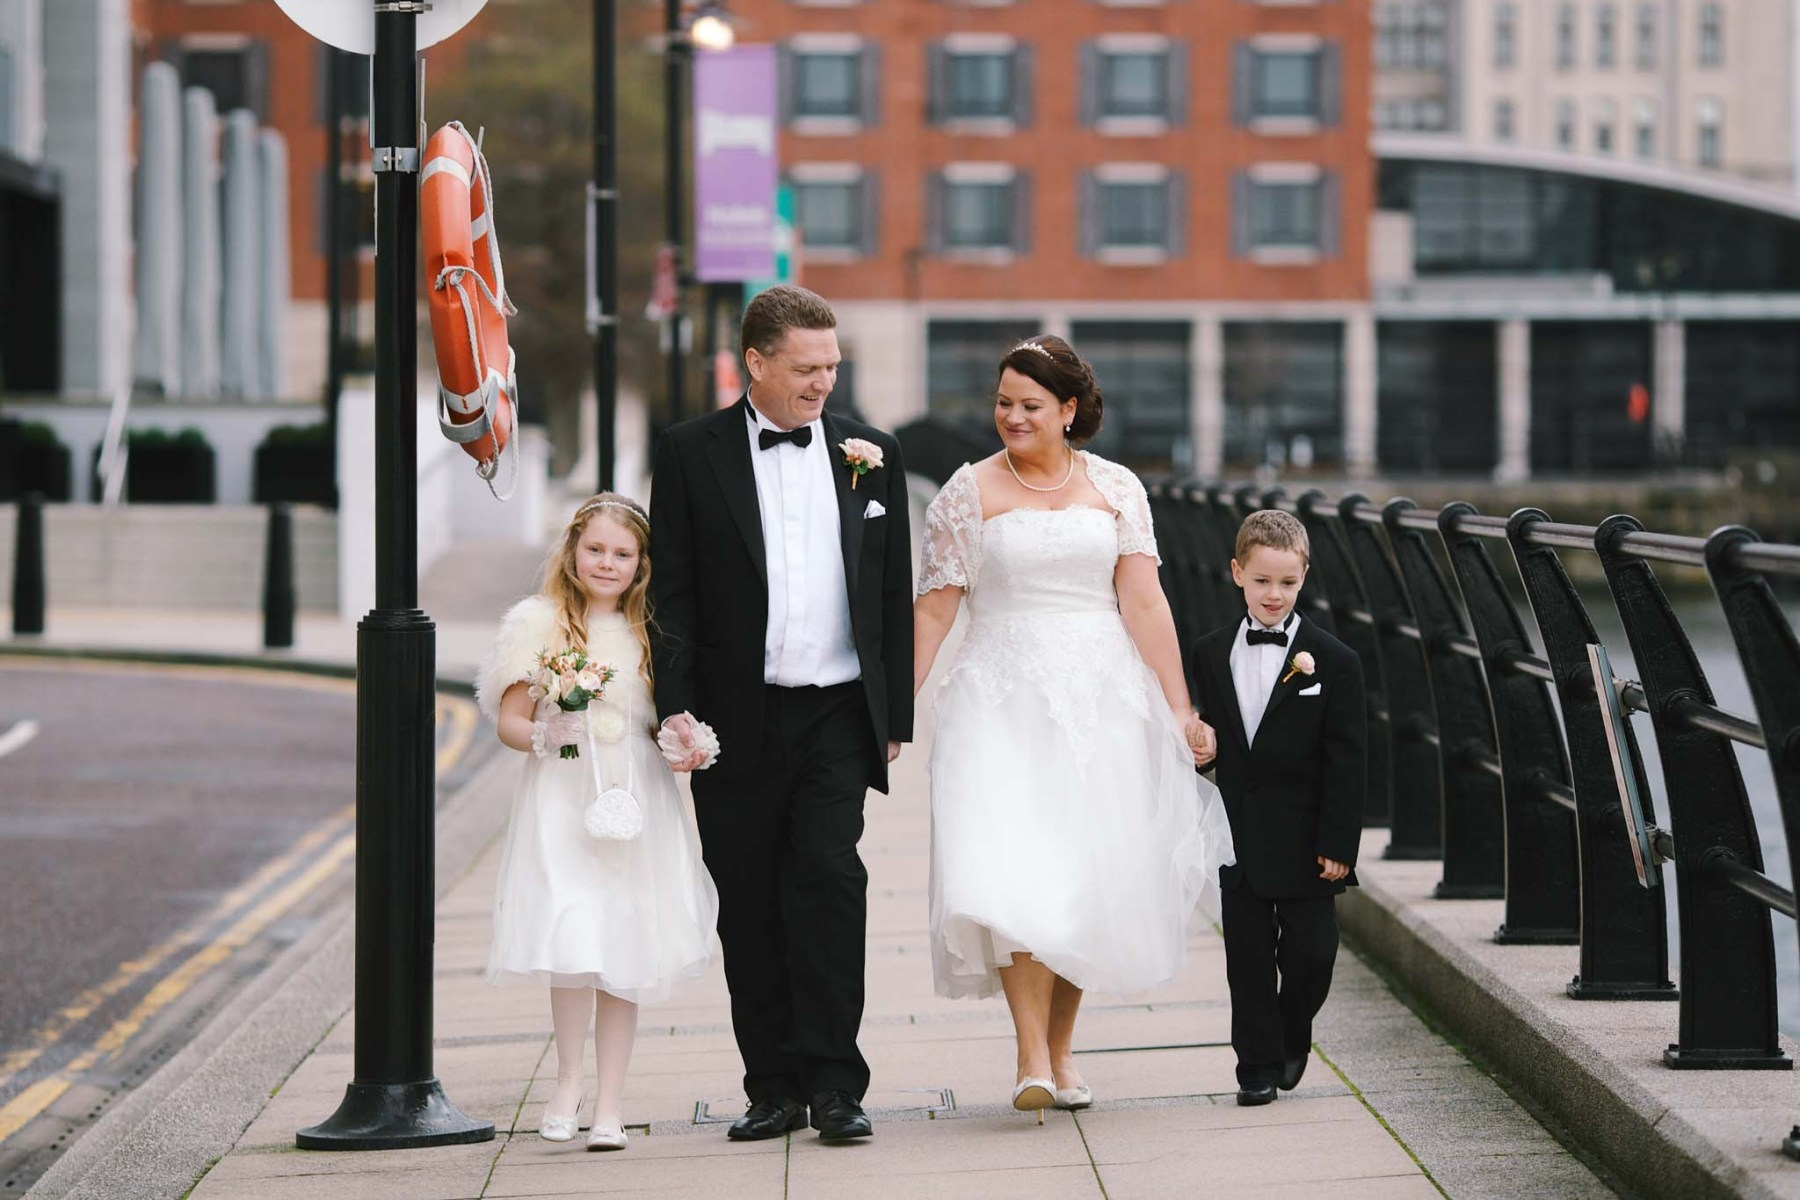 Getting married in Liverpool